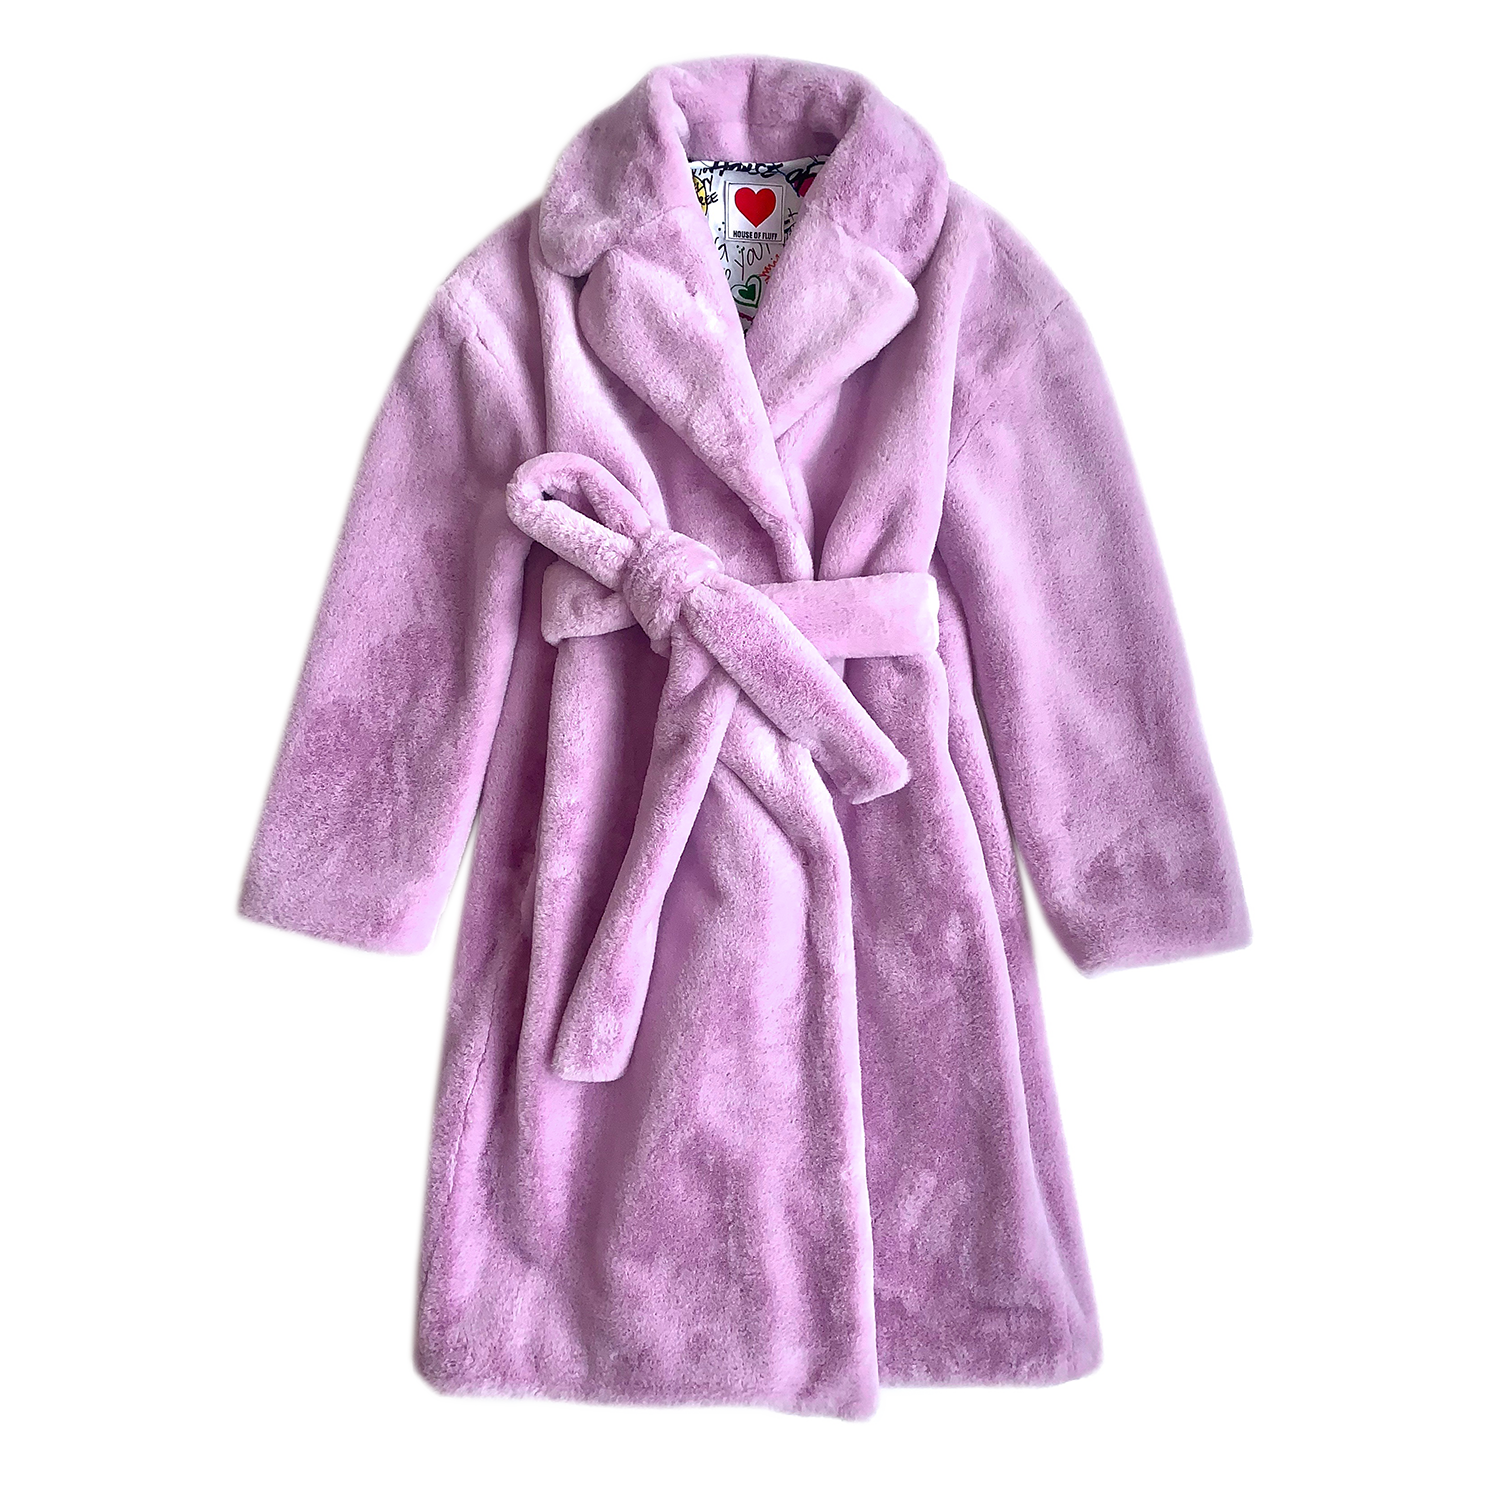 products/lavenderbathrobe_front_6e117e07-4790-4123-8d7a-1d7fe1bee2bc.png